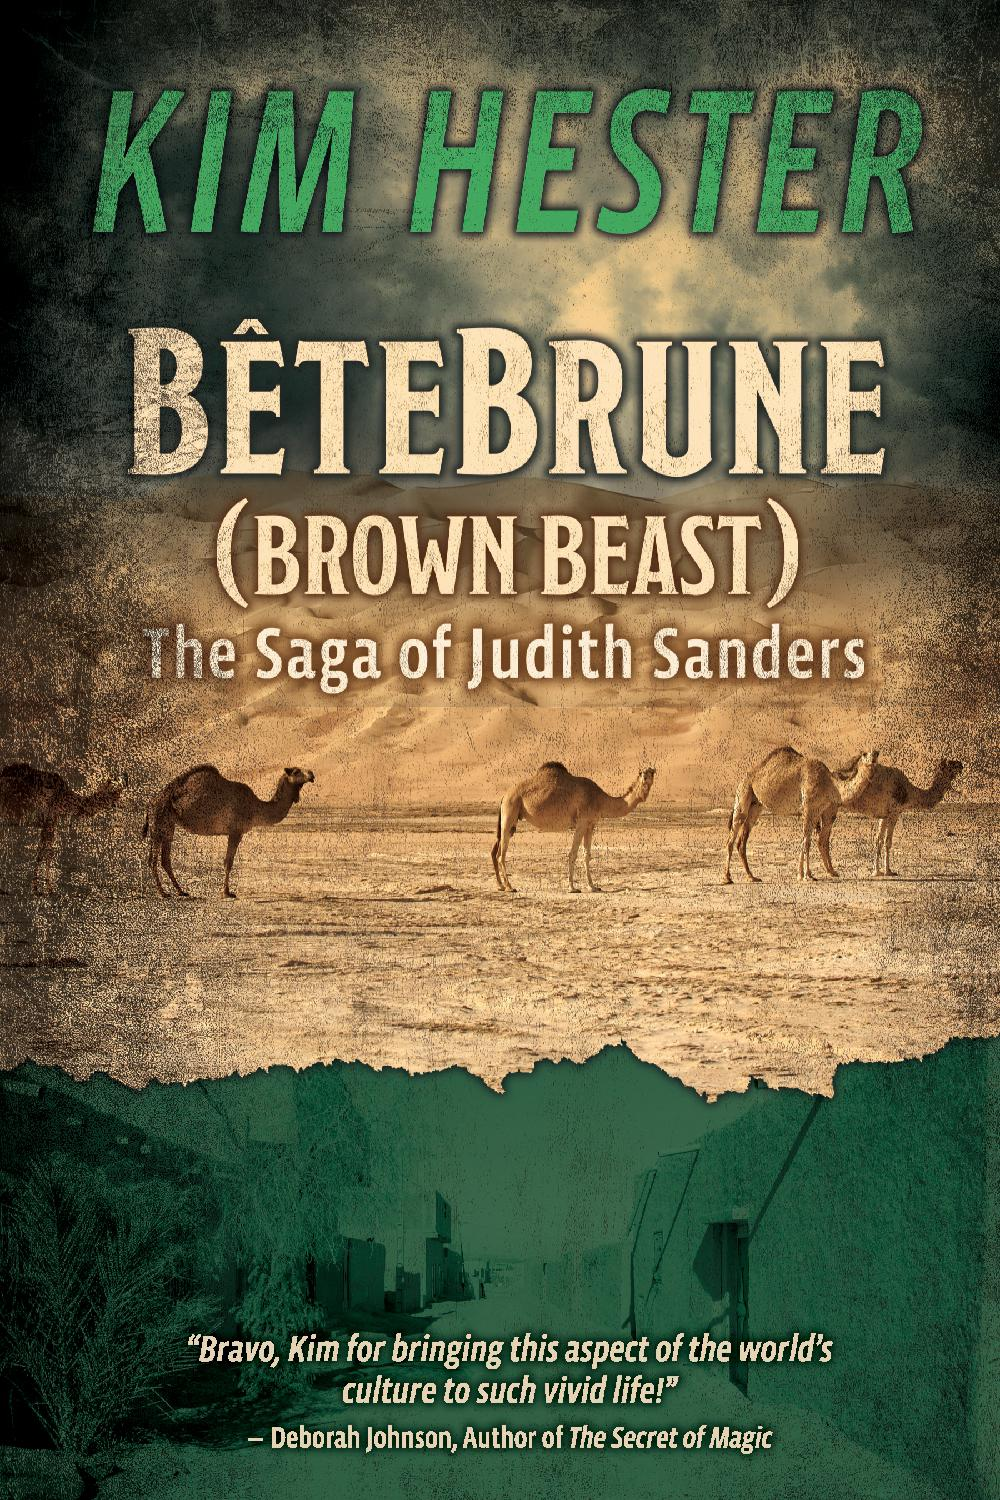 BÊTE BRUNE (BROWN BEAST)